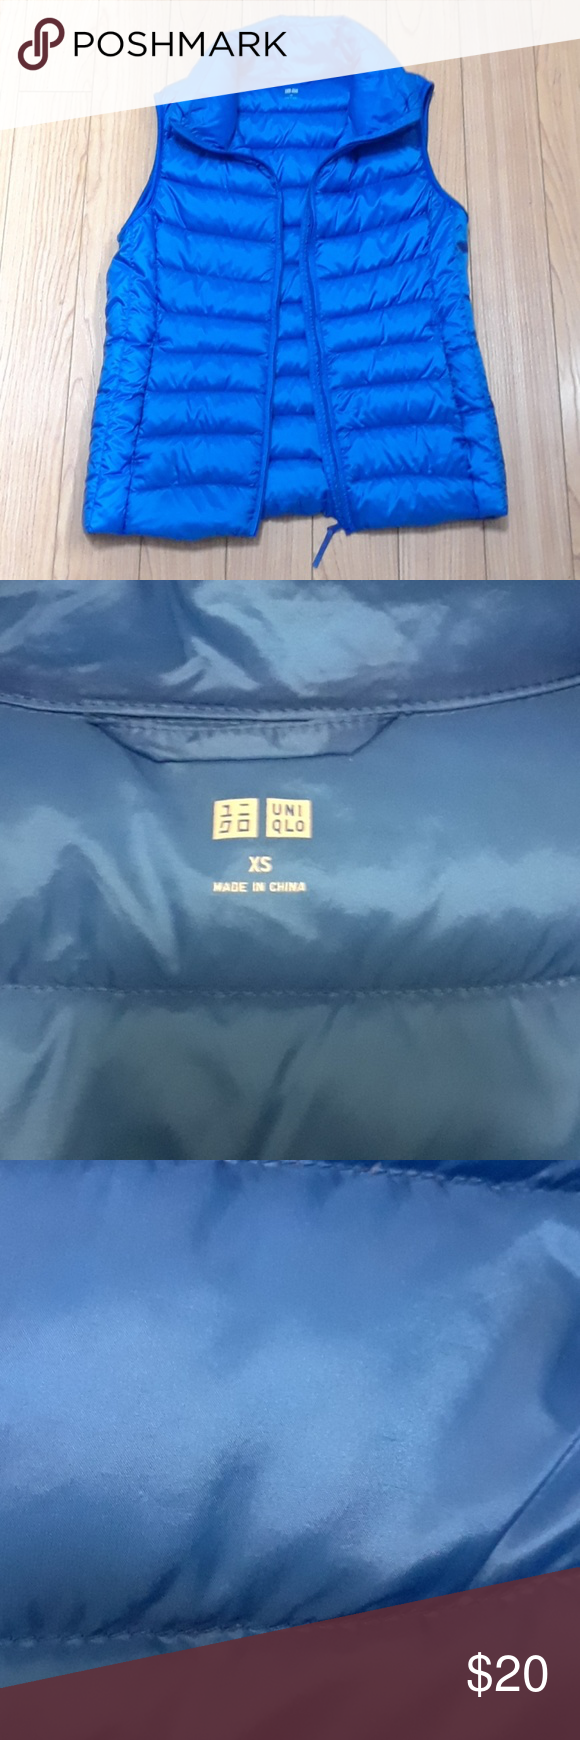 Uniqlo blue down puffer vest Clothes design, Uniqlo